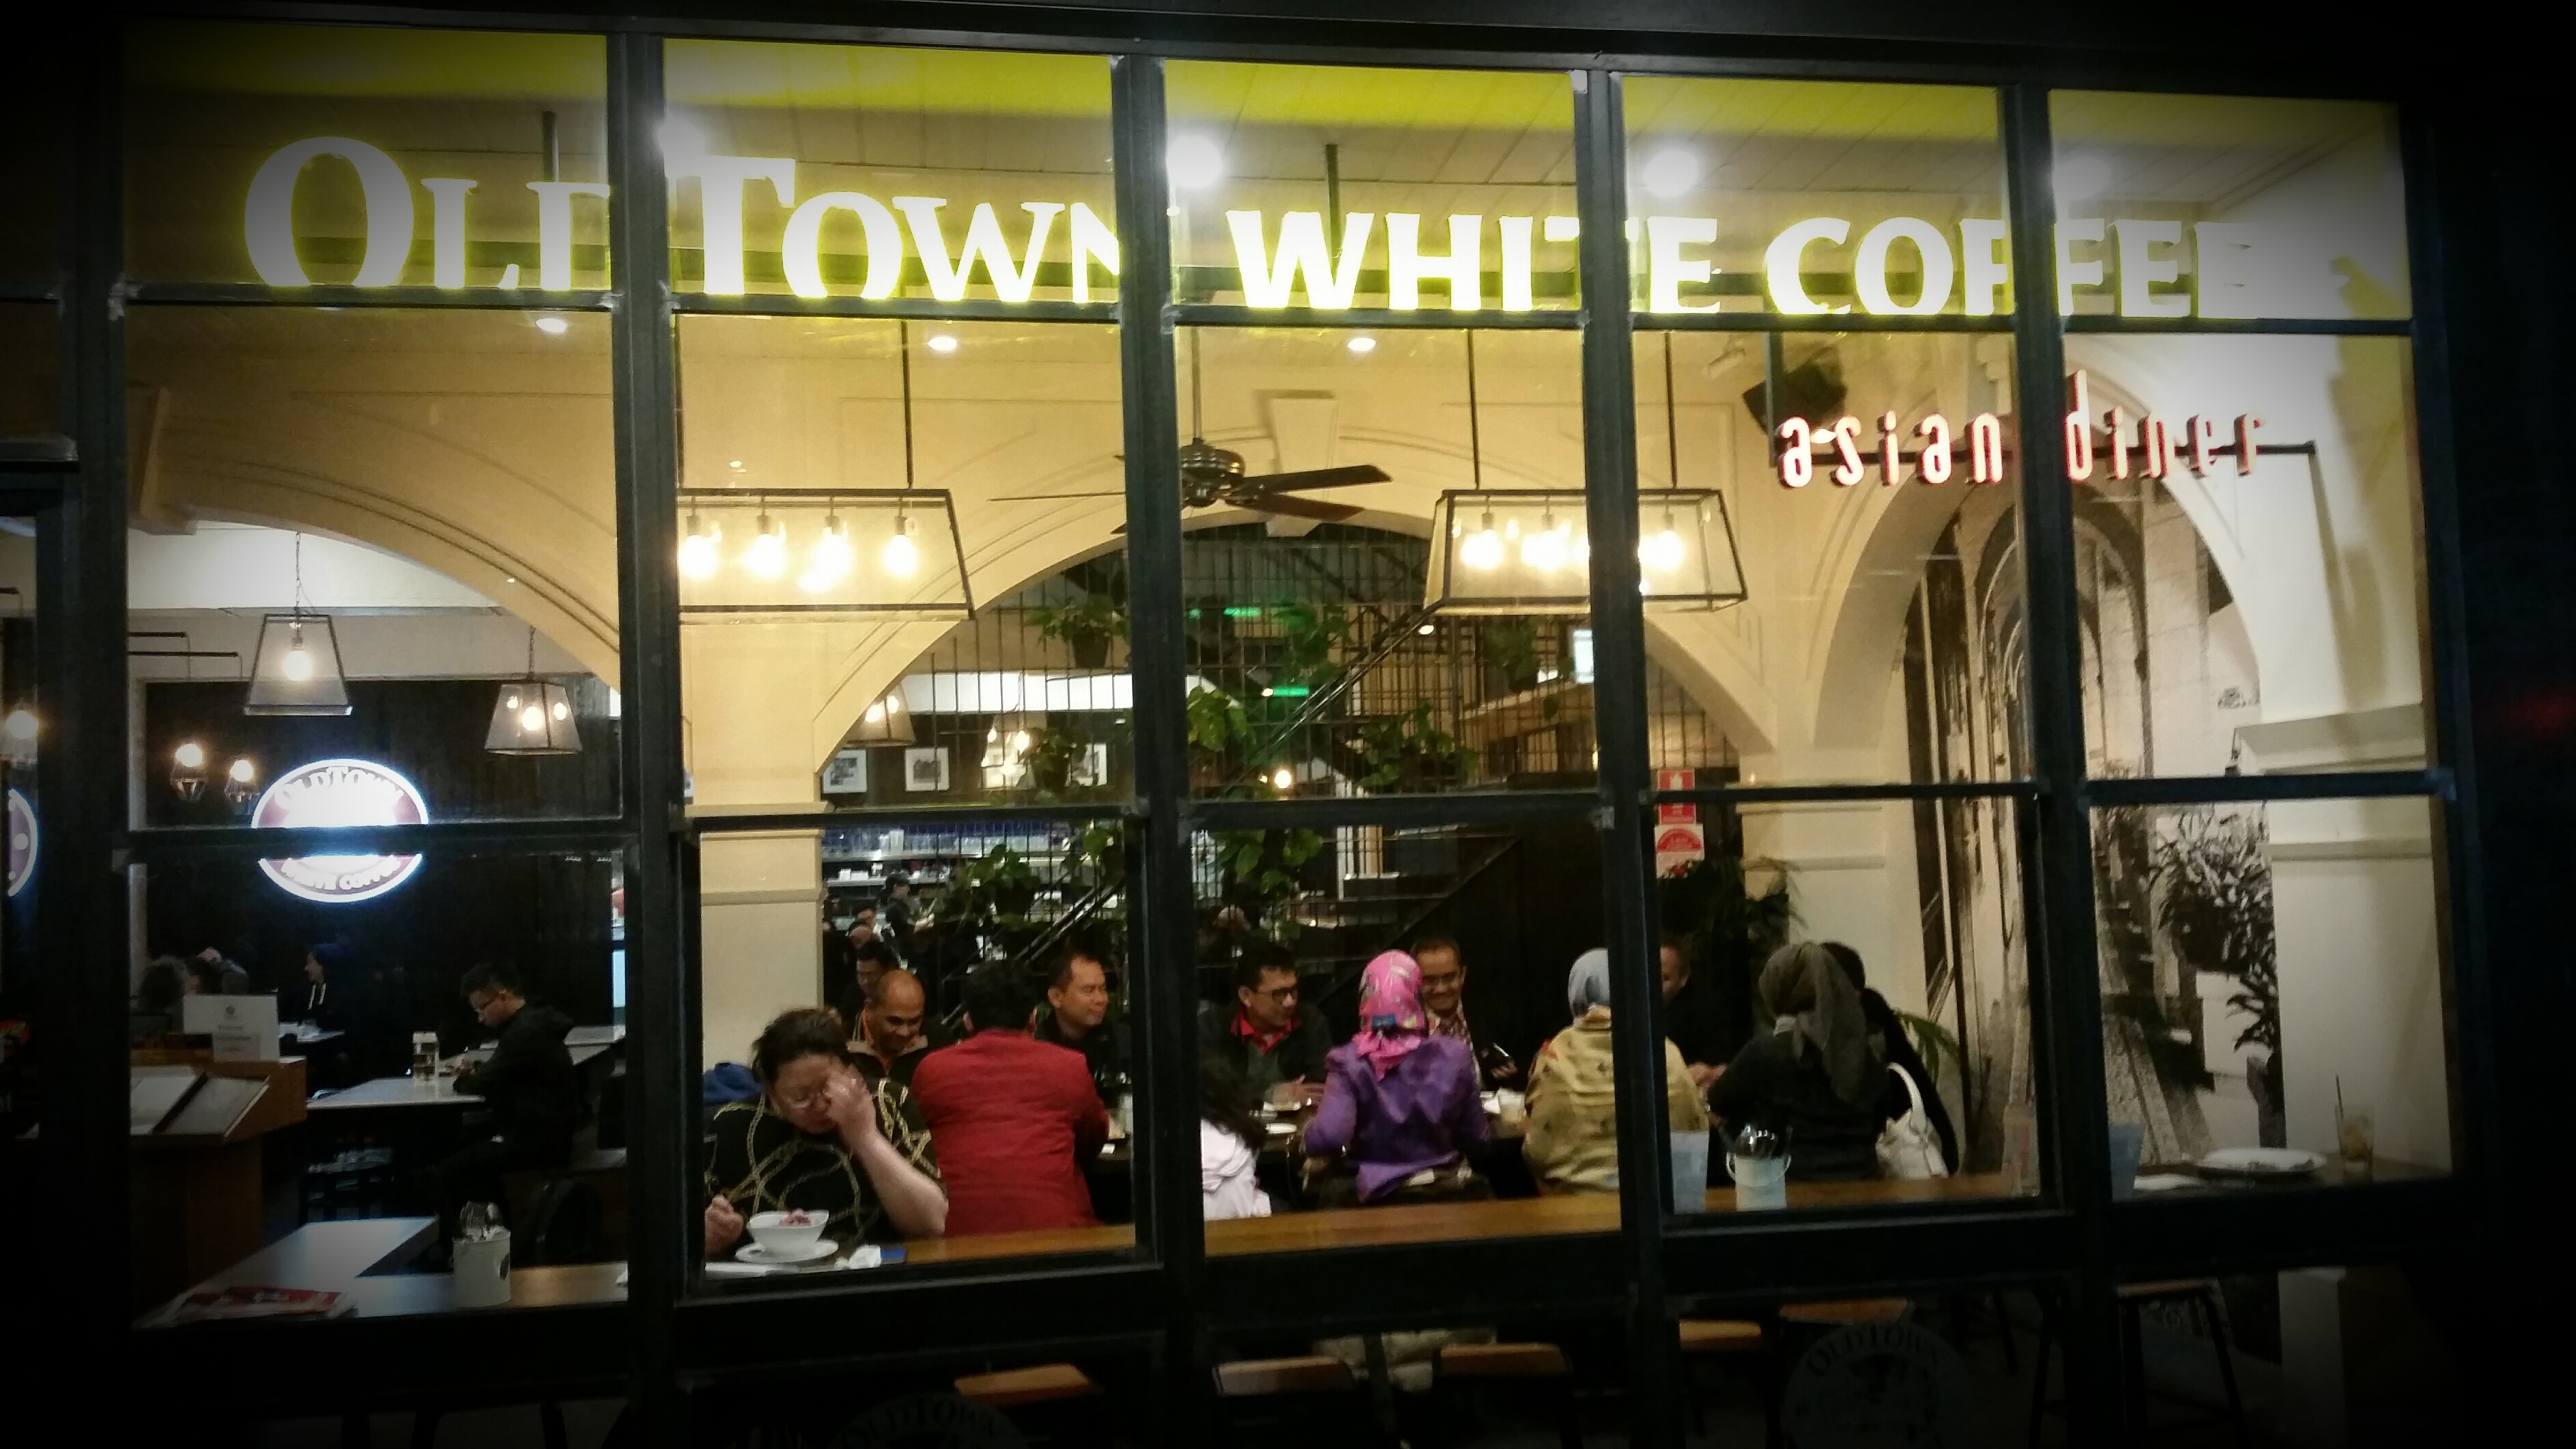 old town white coffee research essay 1 introduction this report consists of the basic definition of old town white coffee, and then followed by the macro environmental analysis of old town white coffee which analyze the political environment, economic environment, social environment and technological environment.